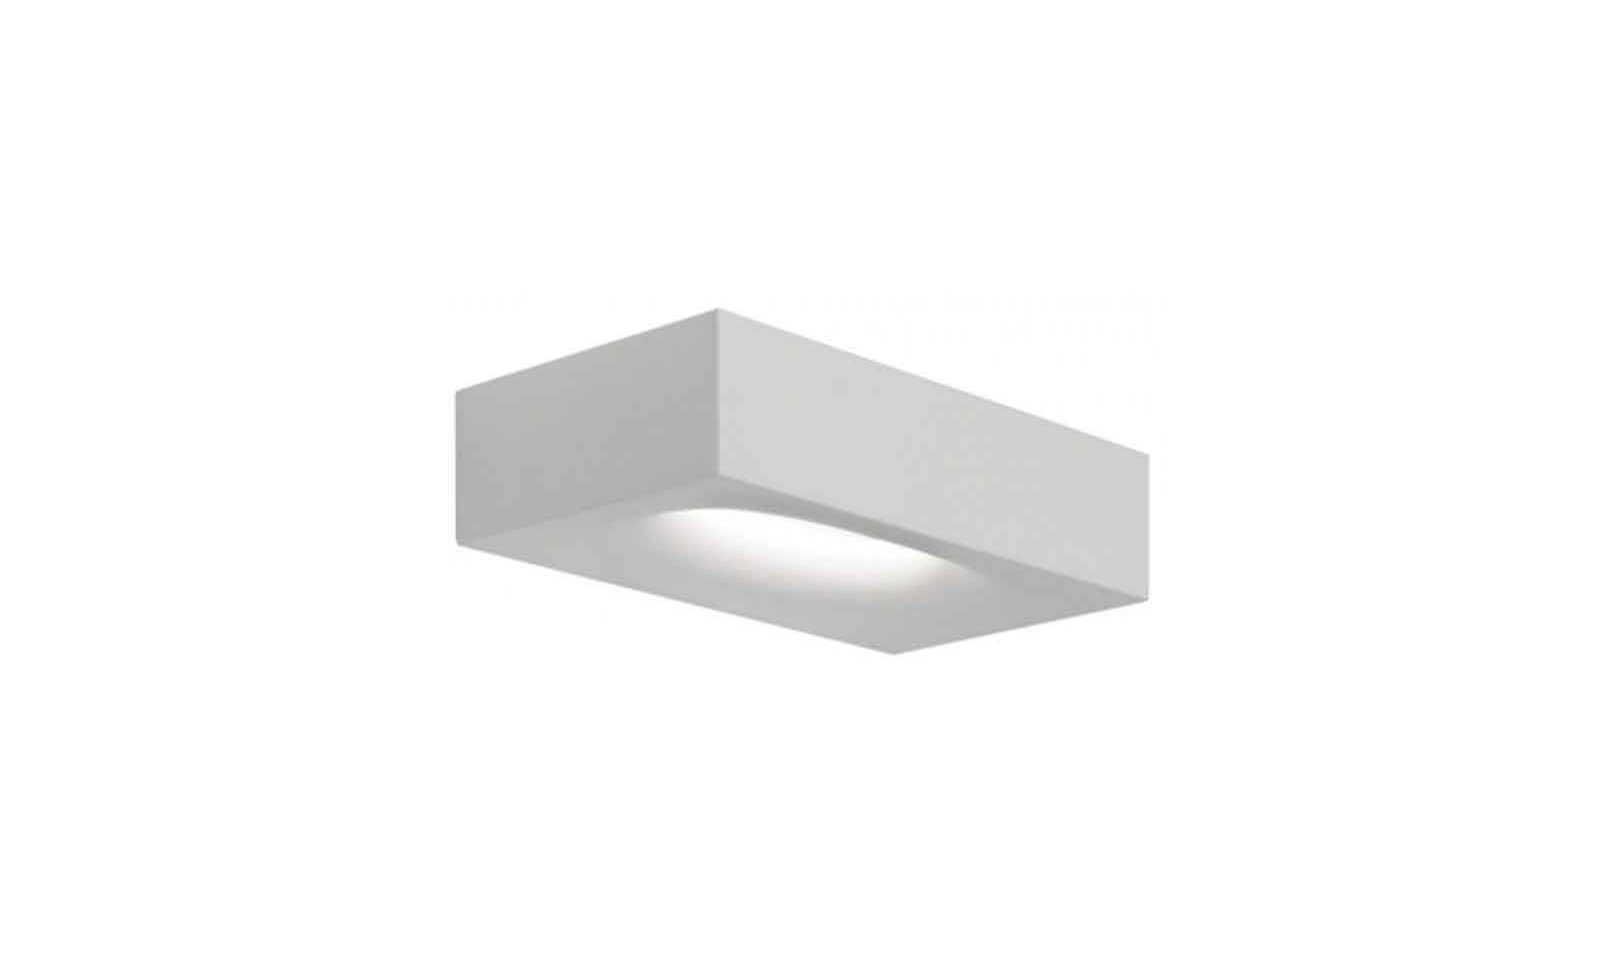 Artemide melete applique di design con sorgente led - Applique di design ...